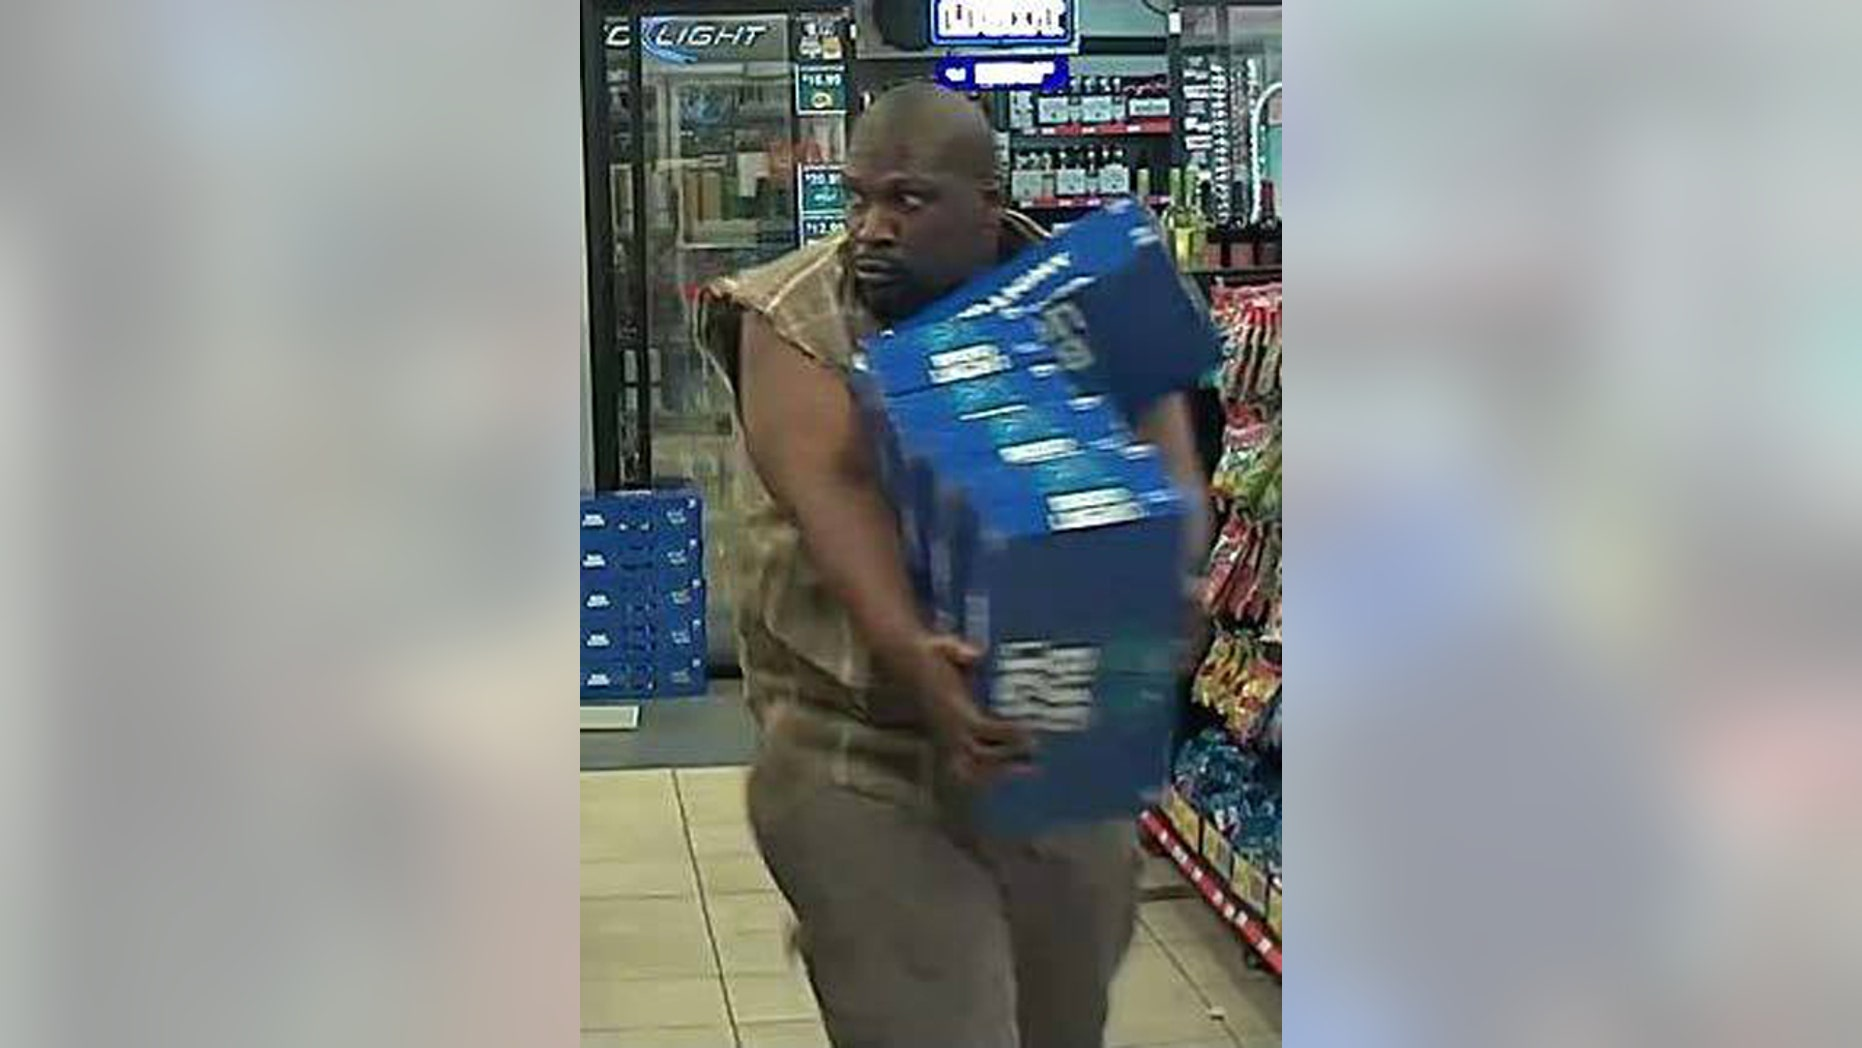 A man is seen stealing five cases of beer at a Texas convenience store on Wednesday, police said.